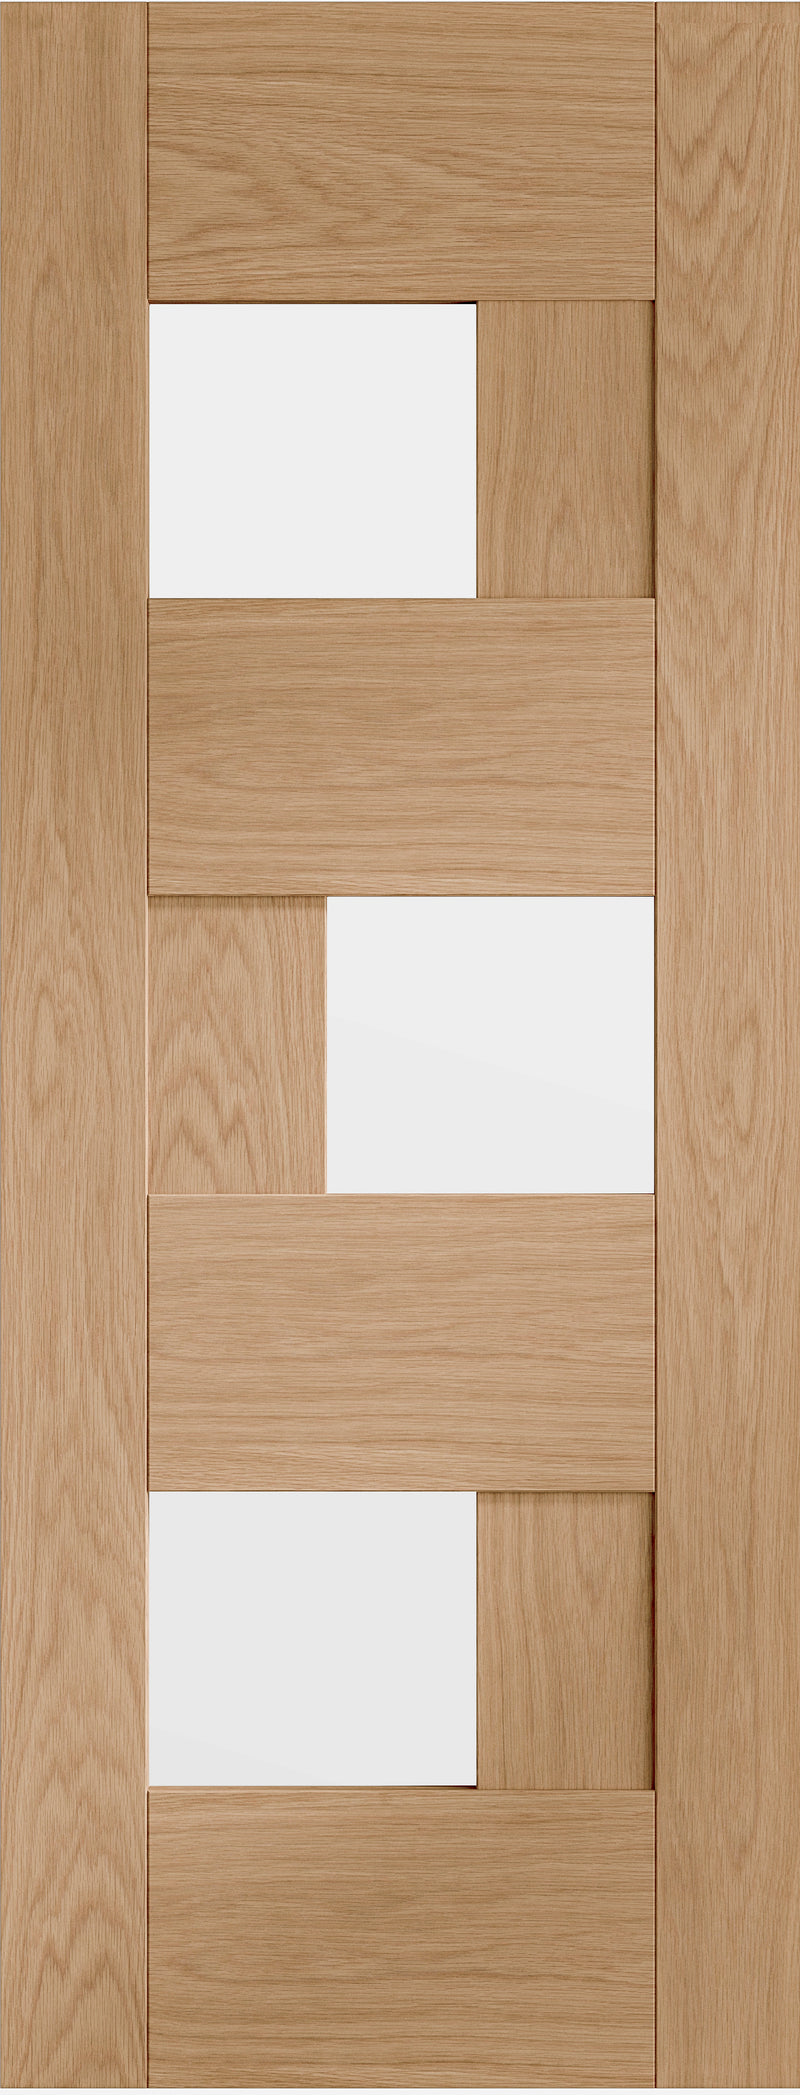 Perugia prefinished oak door with clear glass